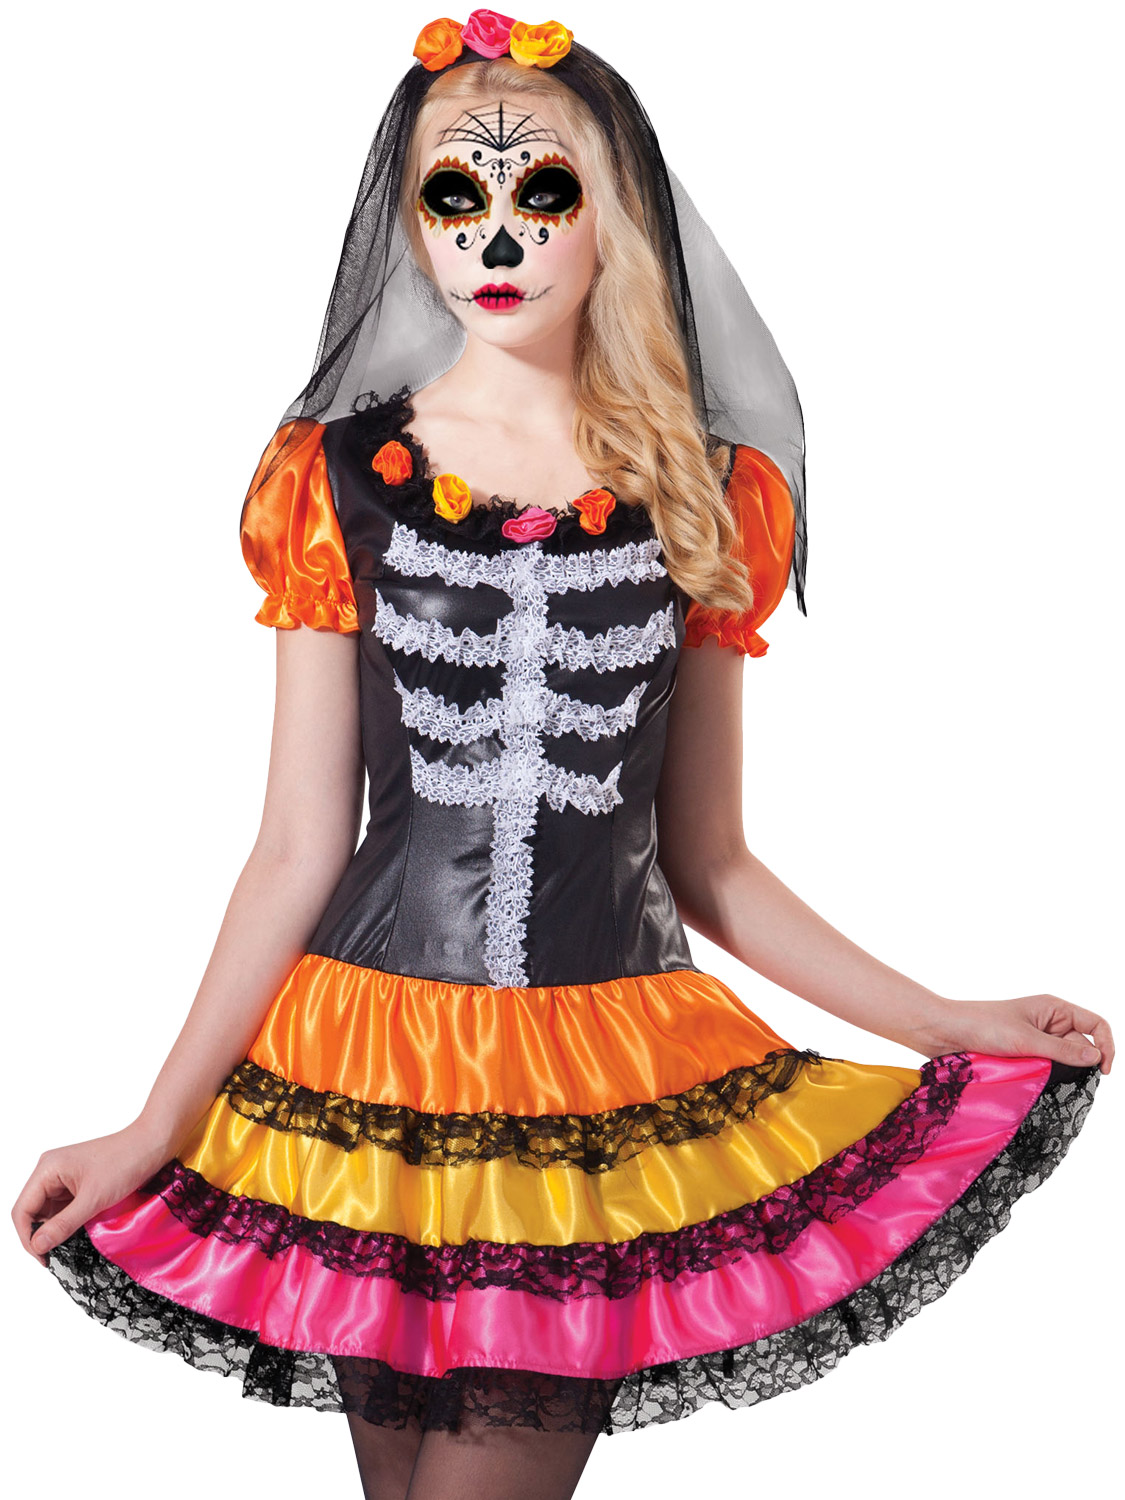 DAY OF THE DEAD GOTHIC TUTU HALLOWEEN UK 10-14 fancy dress costume accessory